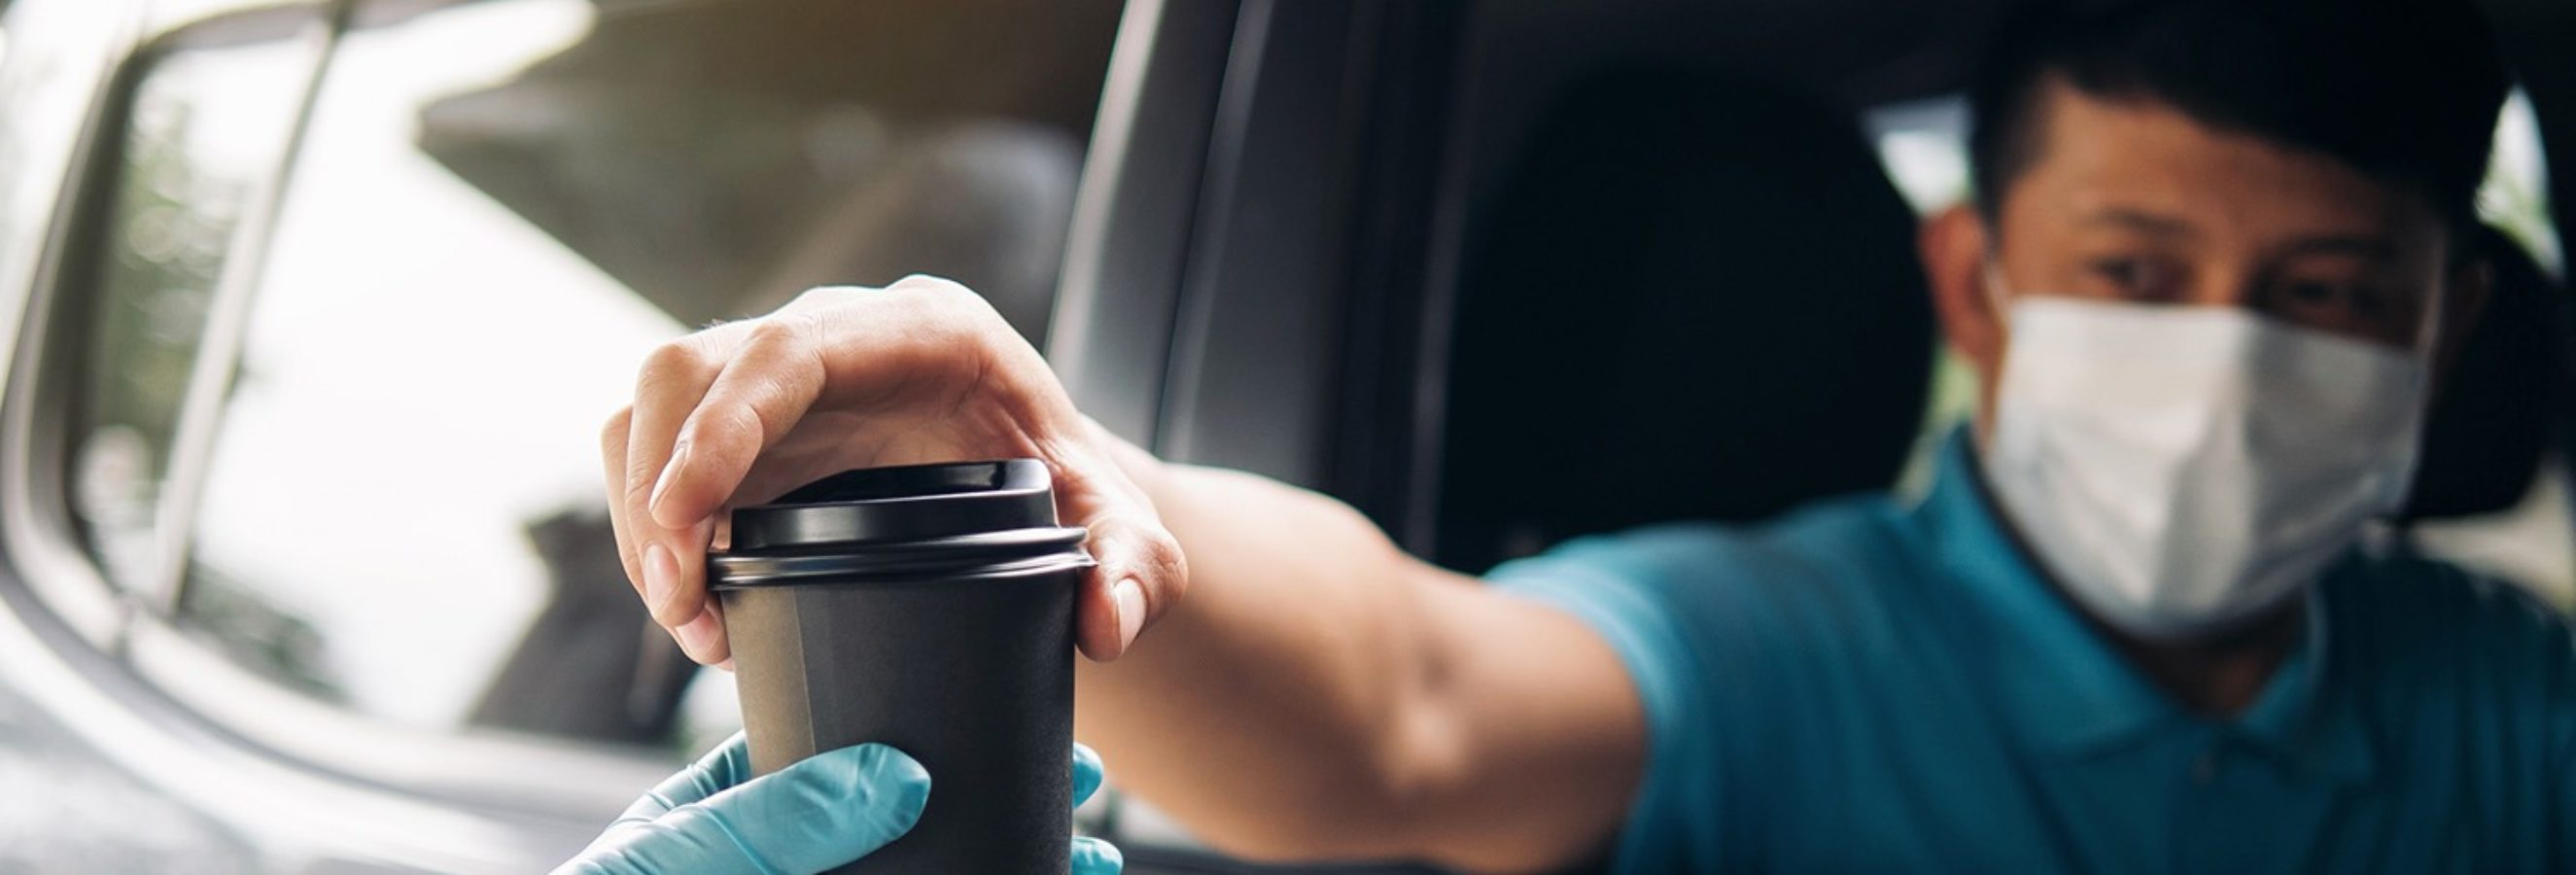 man being handed a coffee at drive-thru